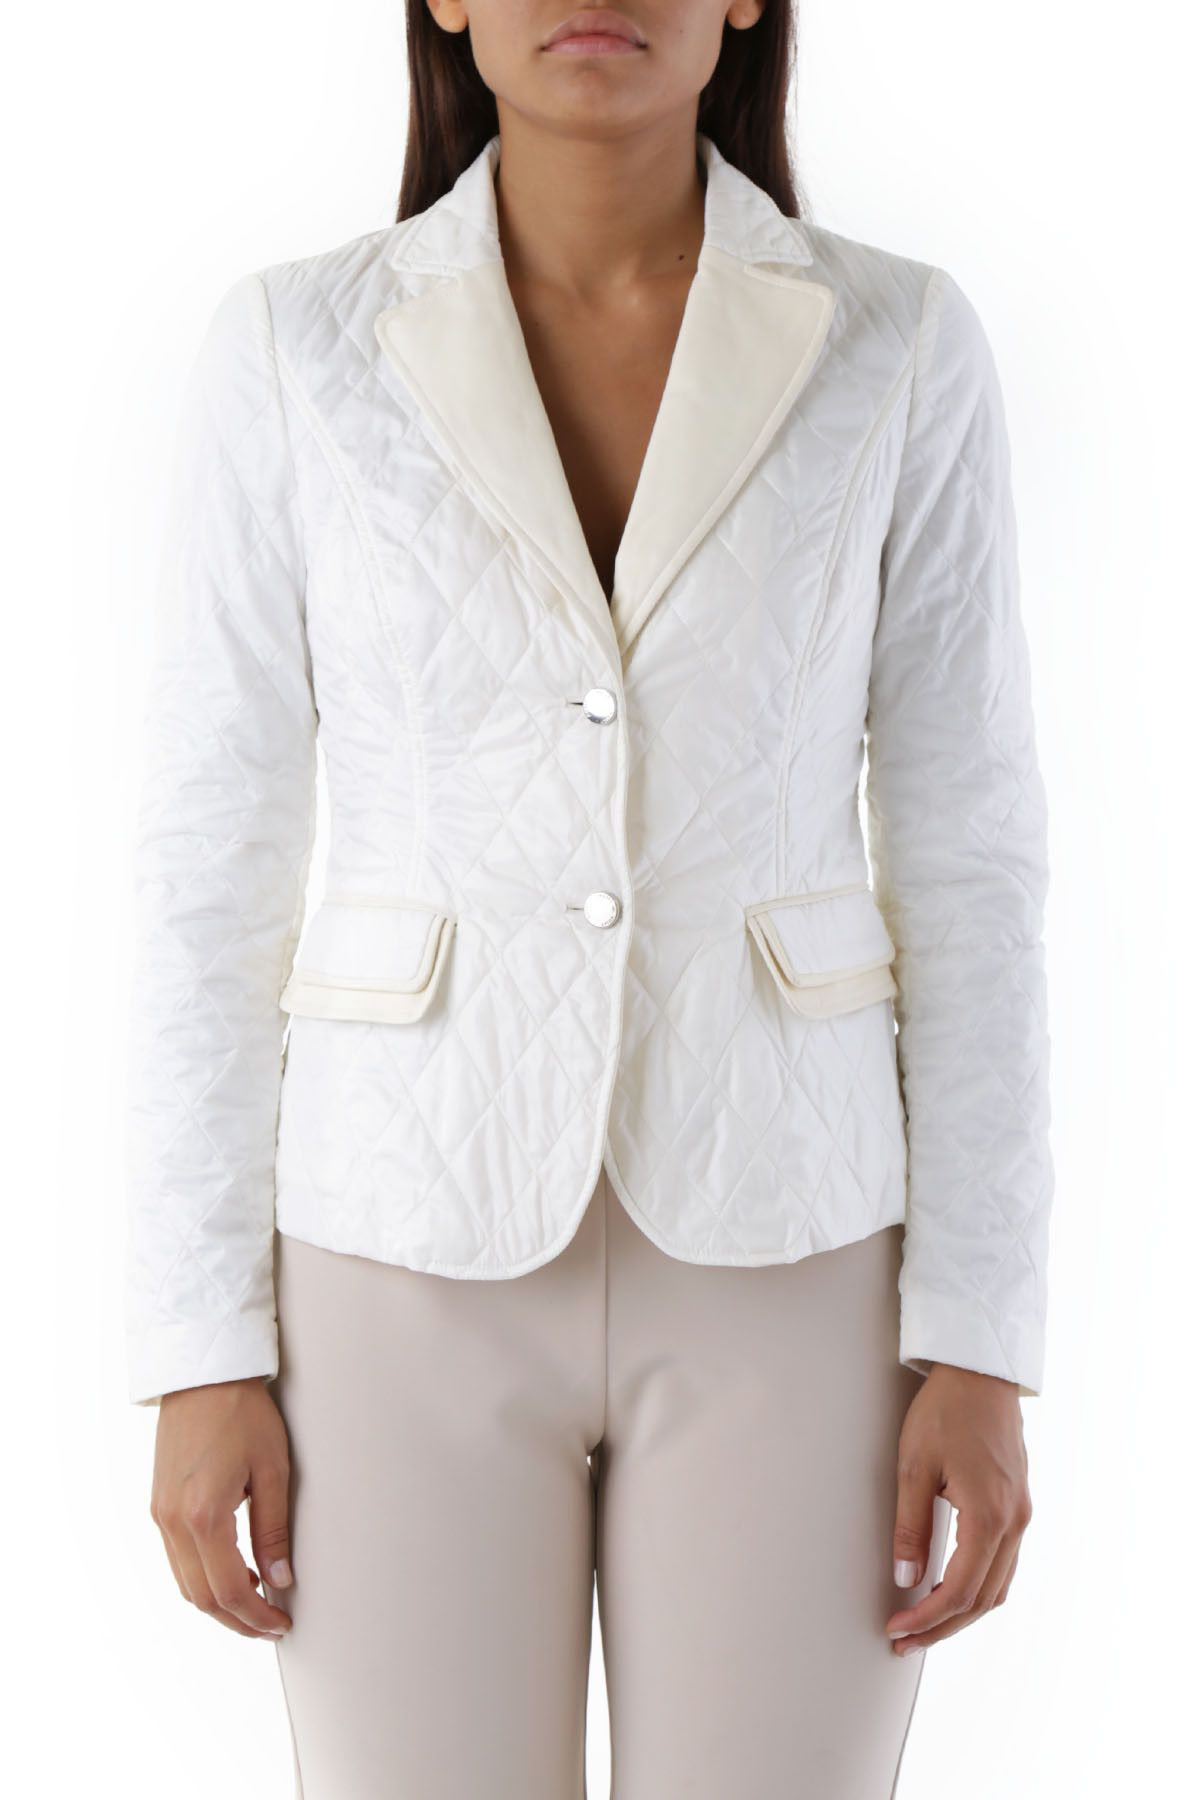 Husky Women's Blazer In White